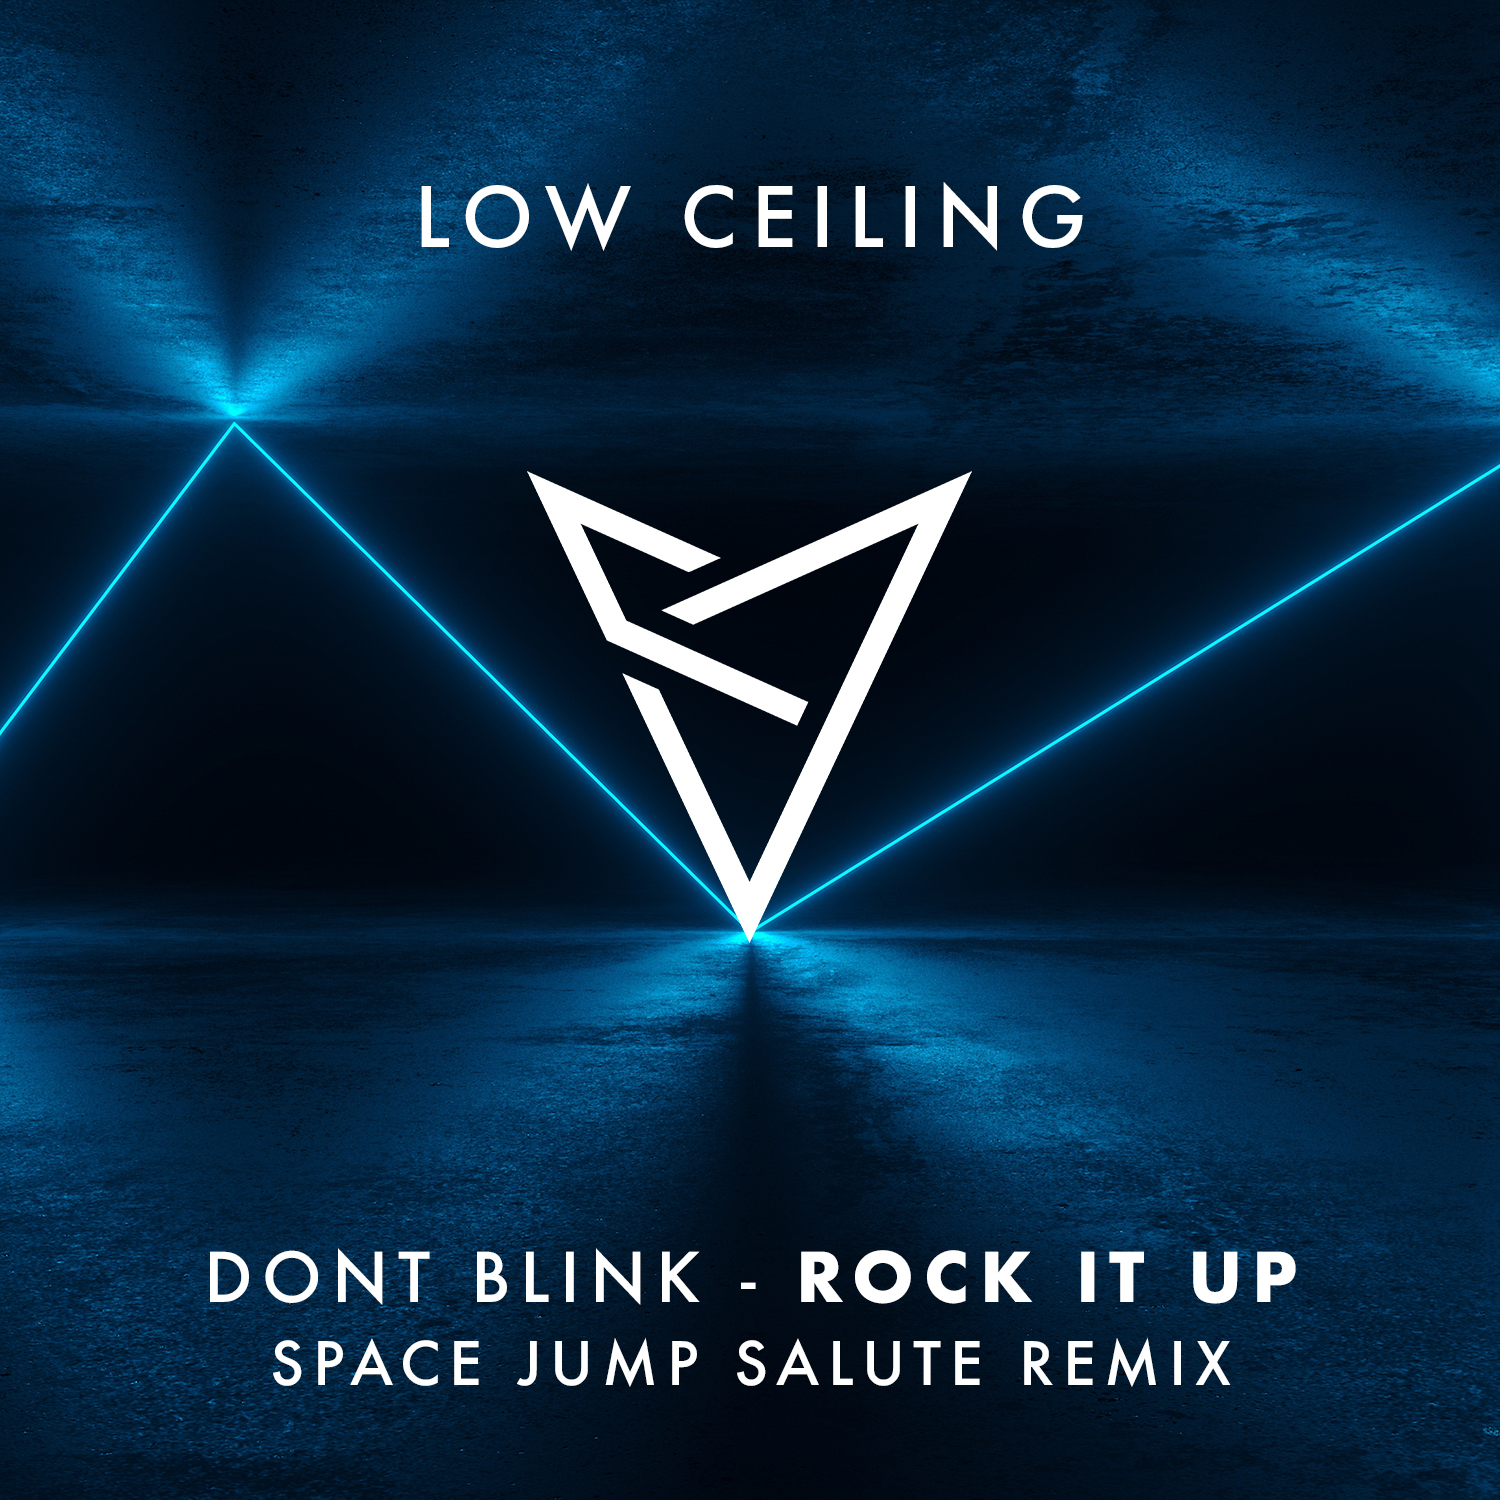 DONT BLINK - ROCK IT UP (Space Jump Salute Remix).jpg